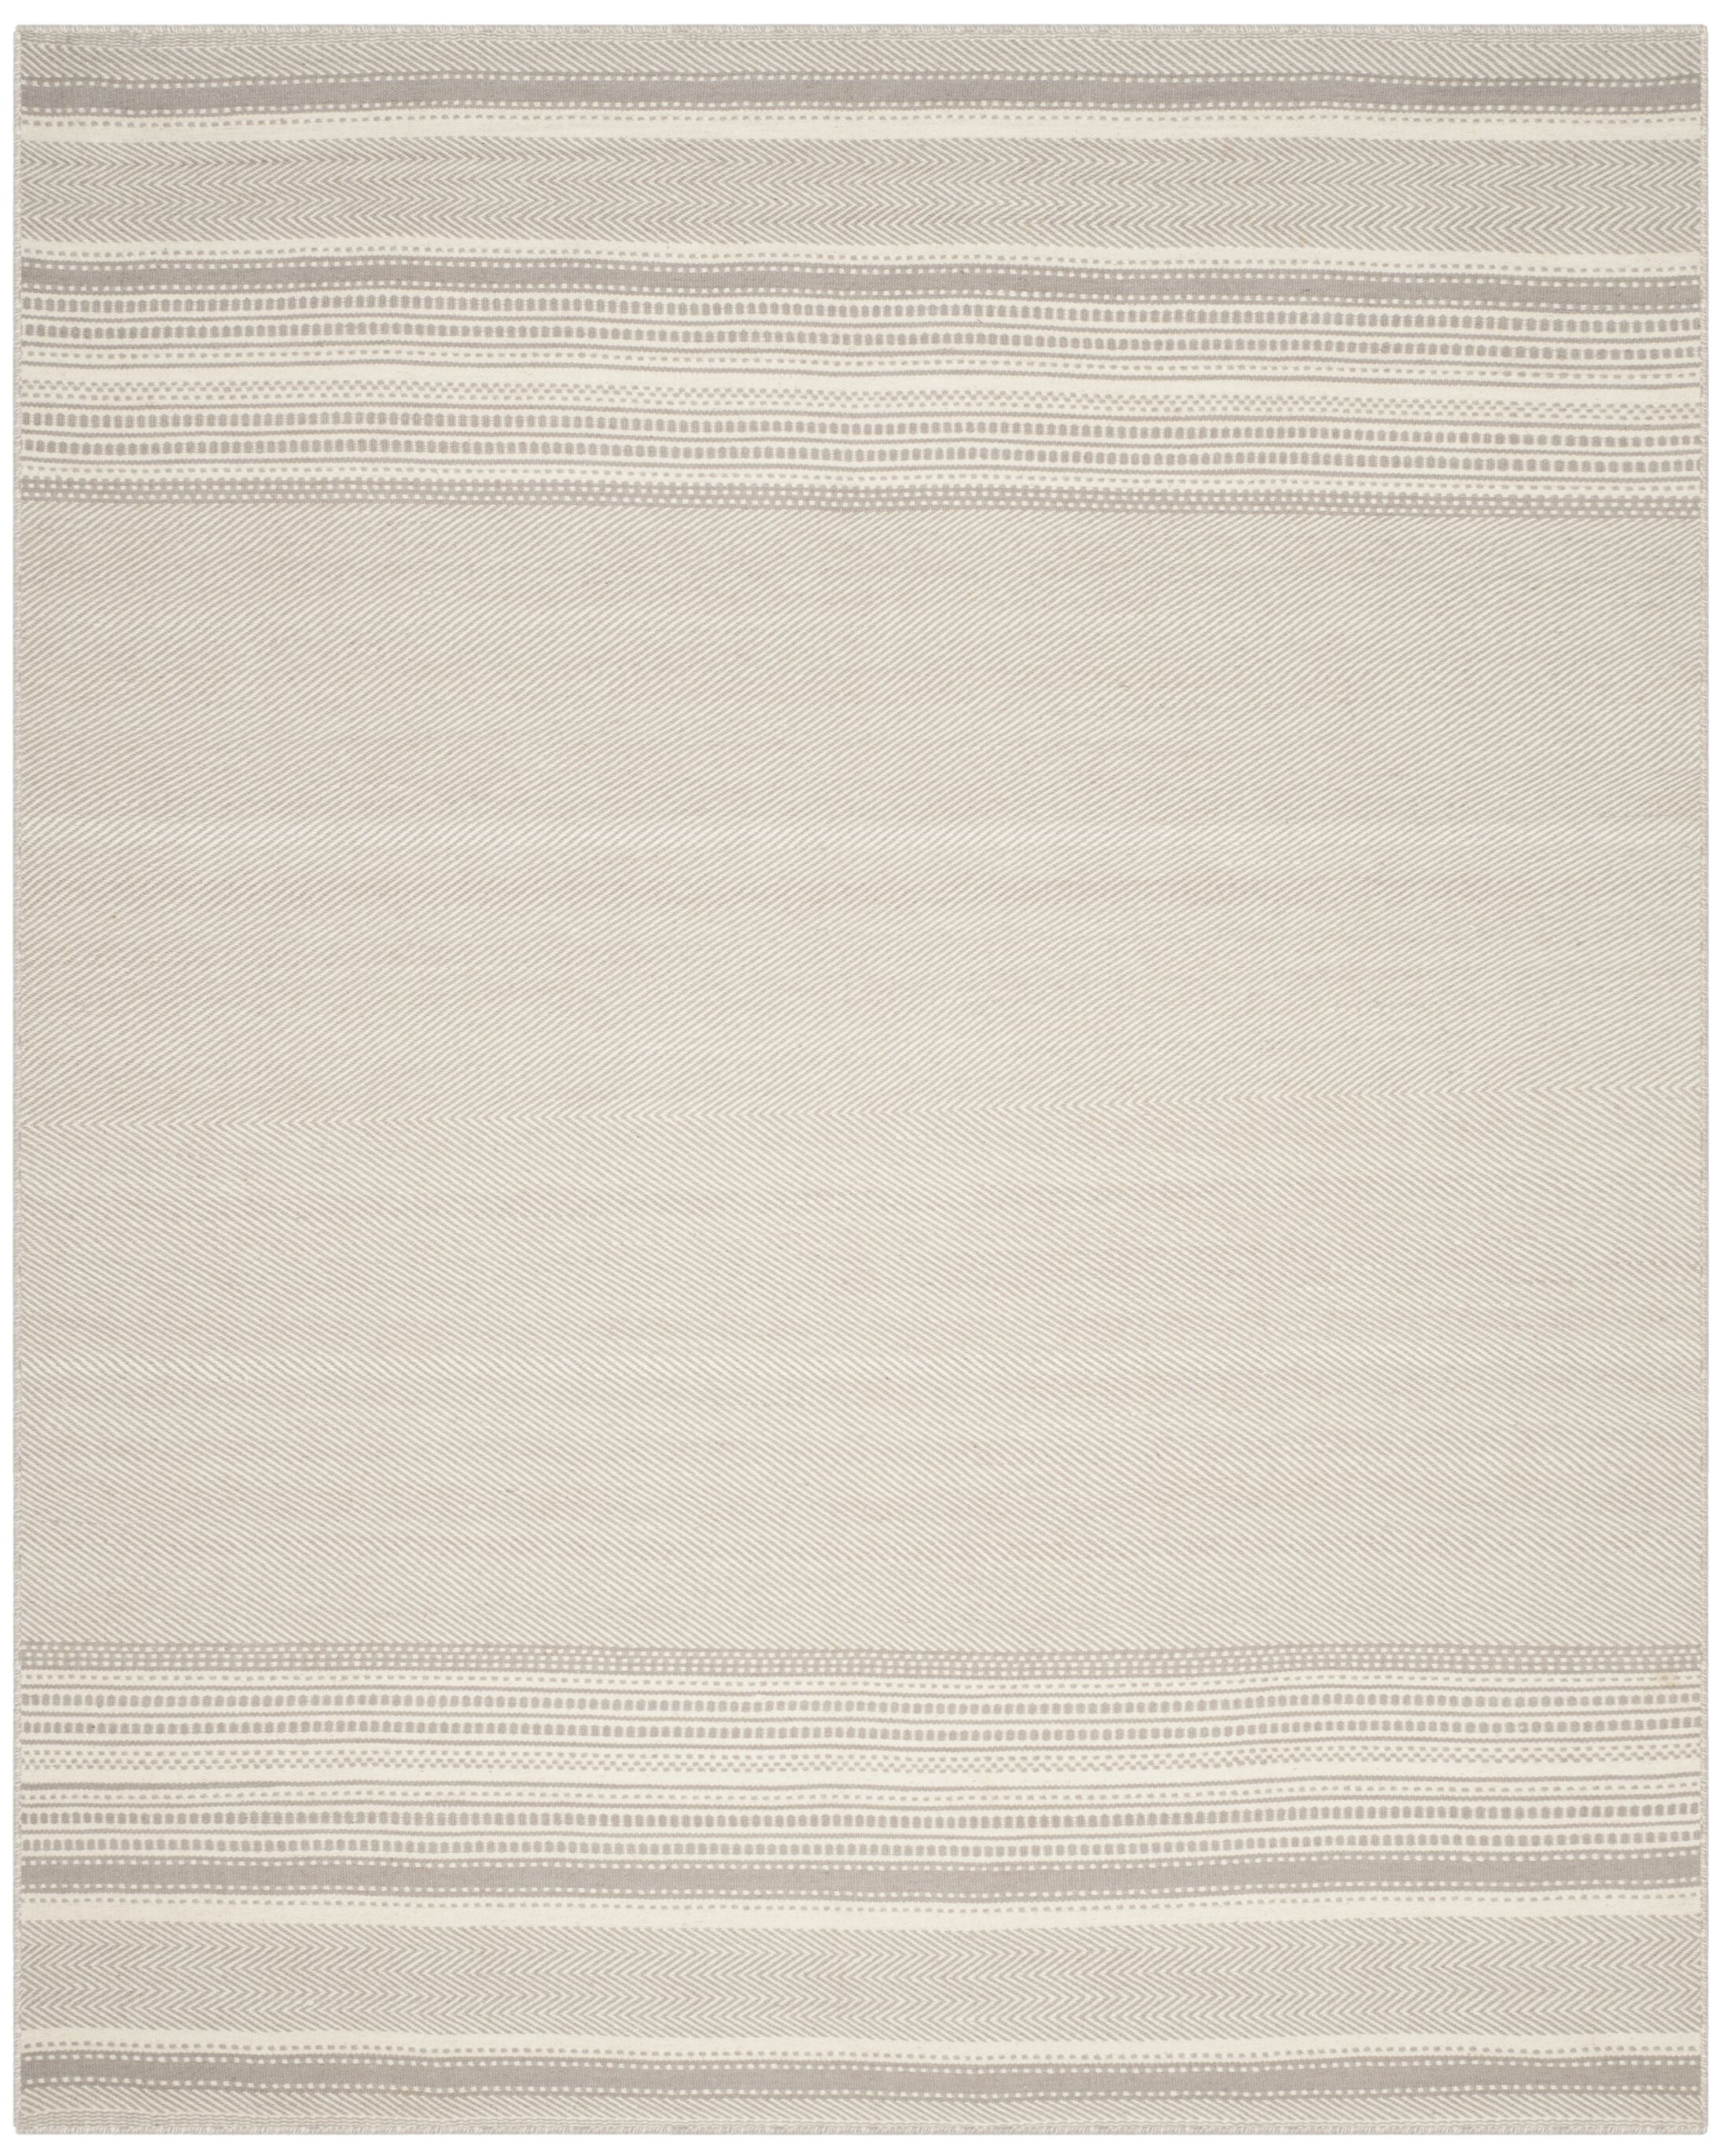 Butters Hand-Woven Grey/Ivory Area Rug Rug Size: Rectangle 8' x 10'